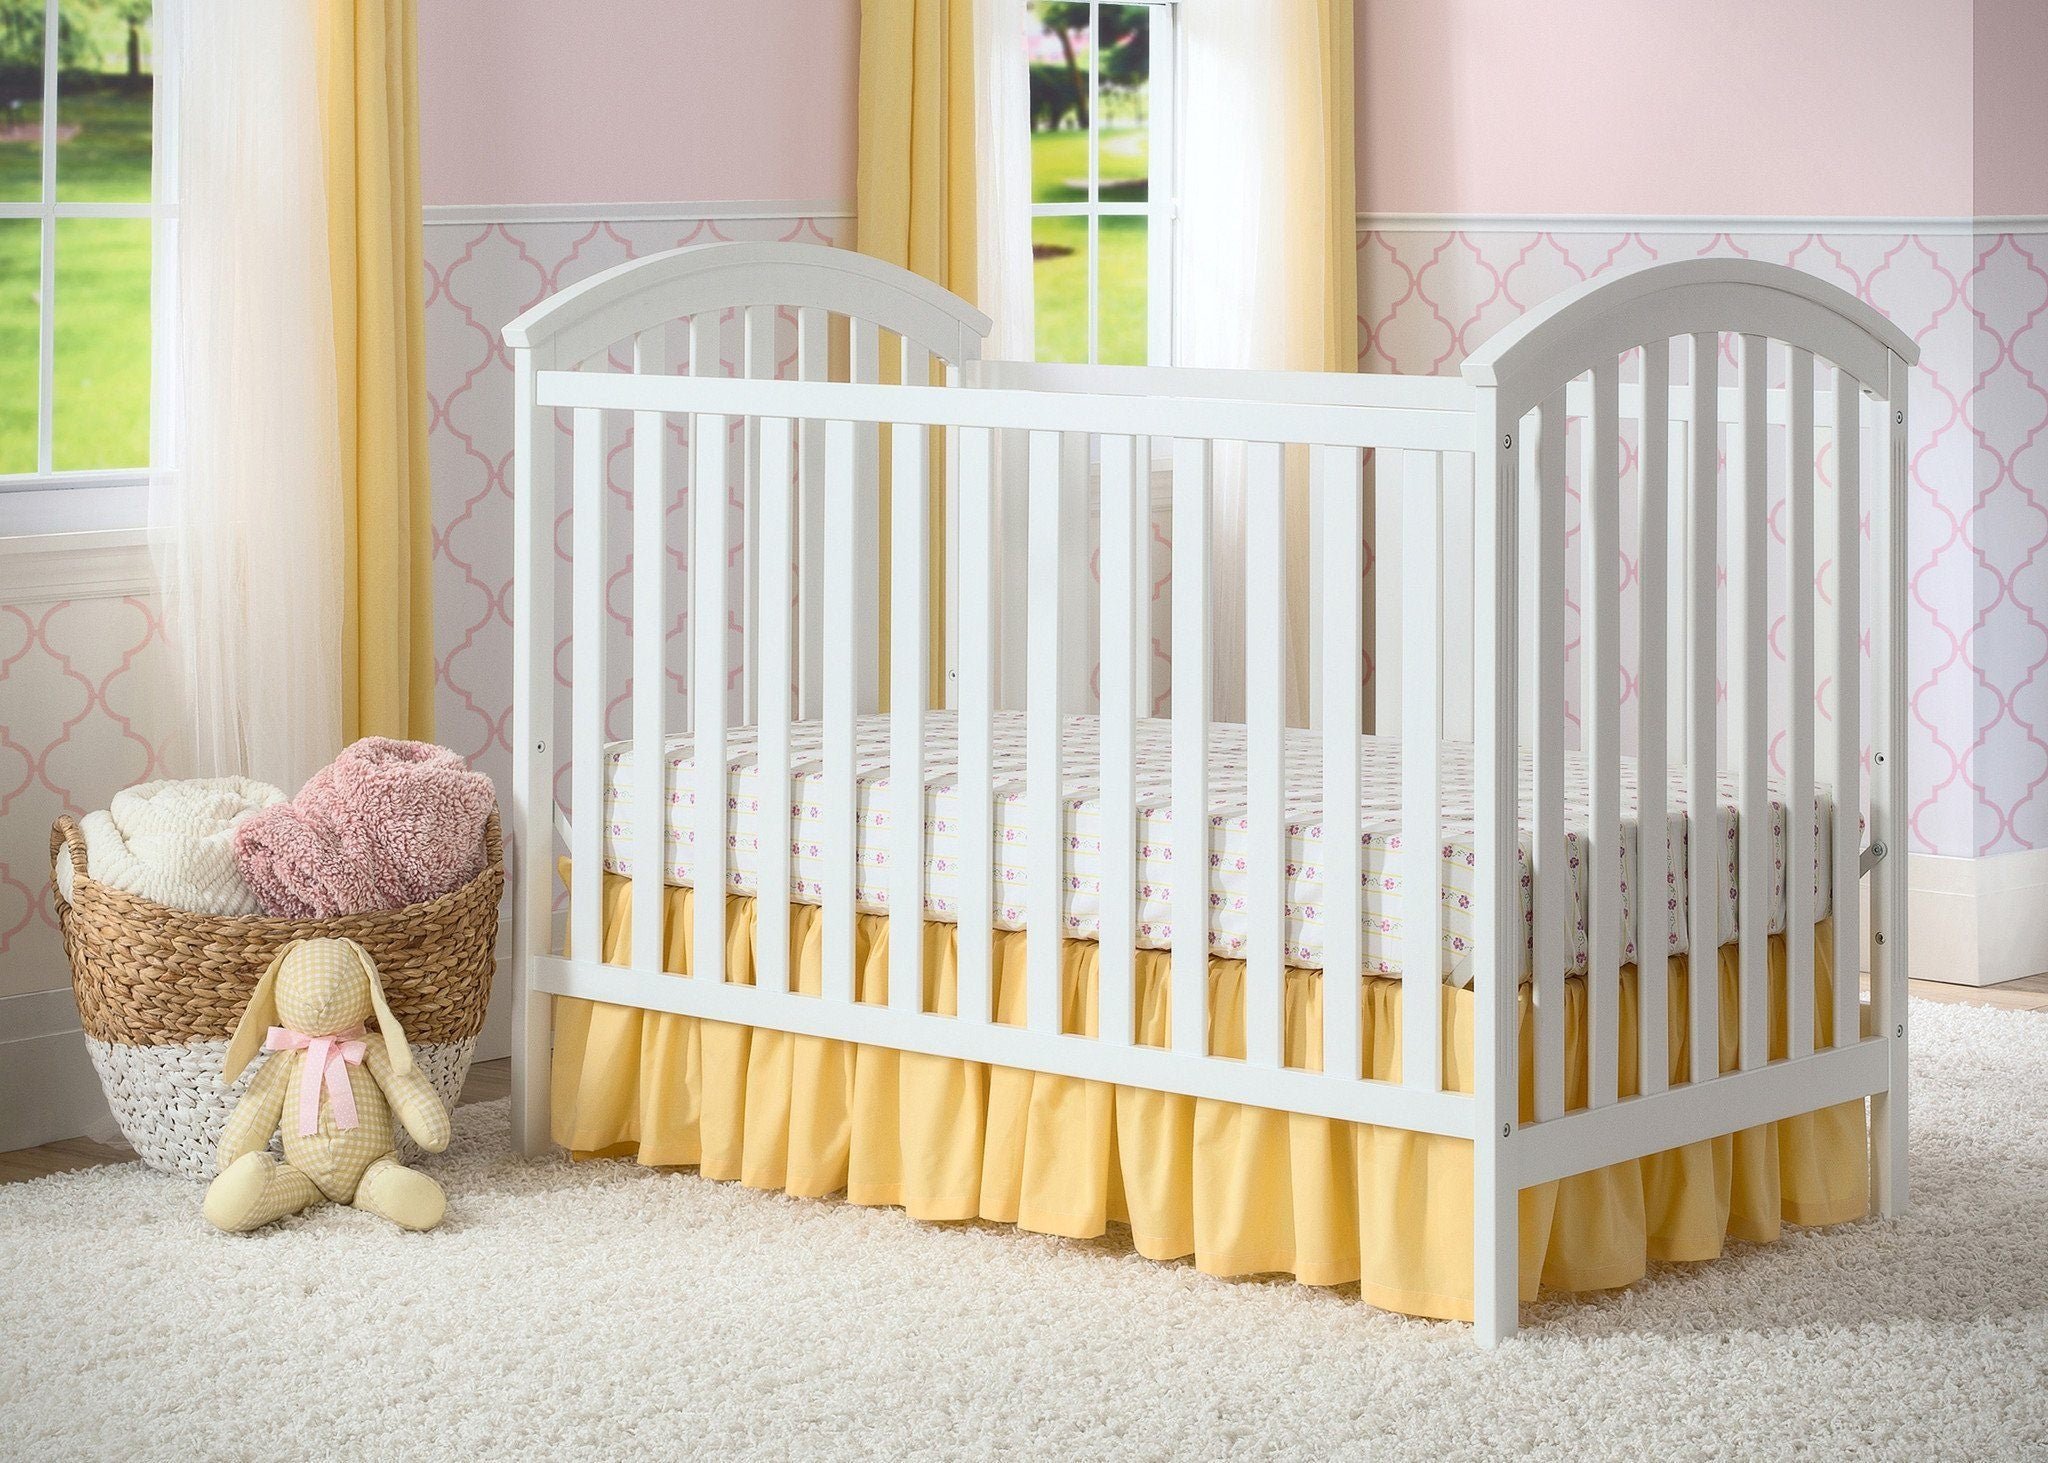 Delta Children White (100) Arbour 3-in-1 Crib, Detailed View a2a